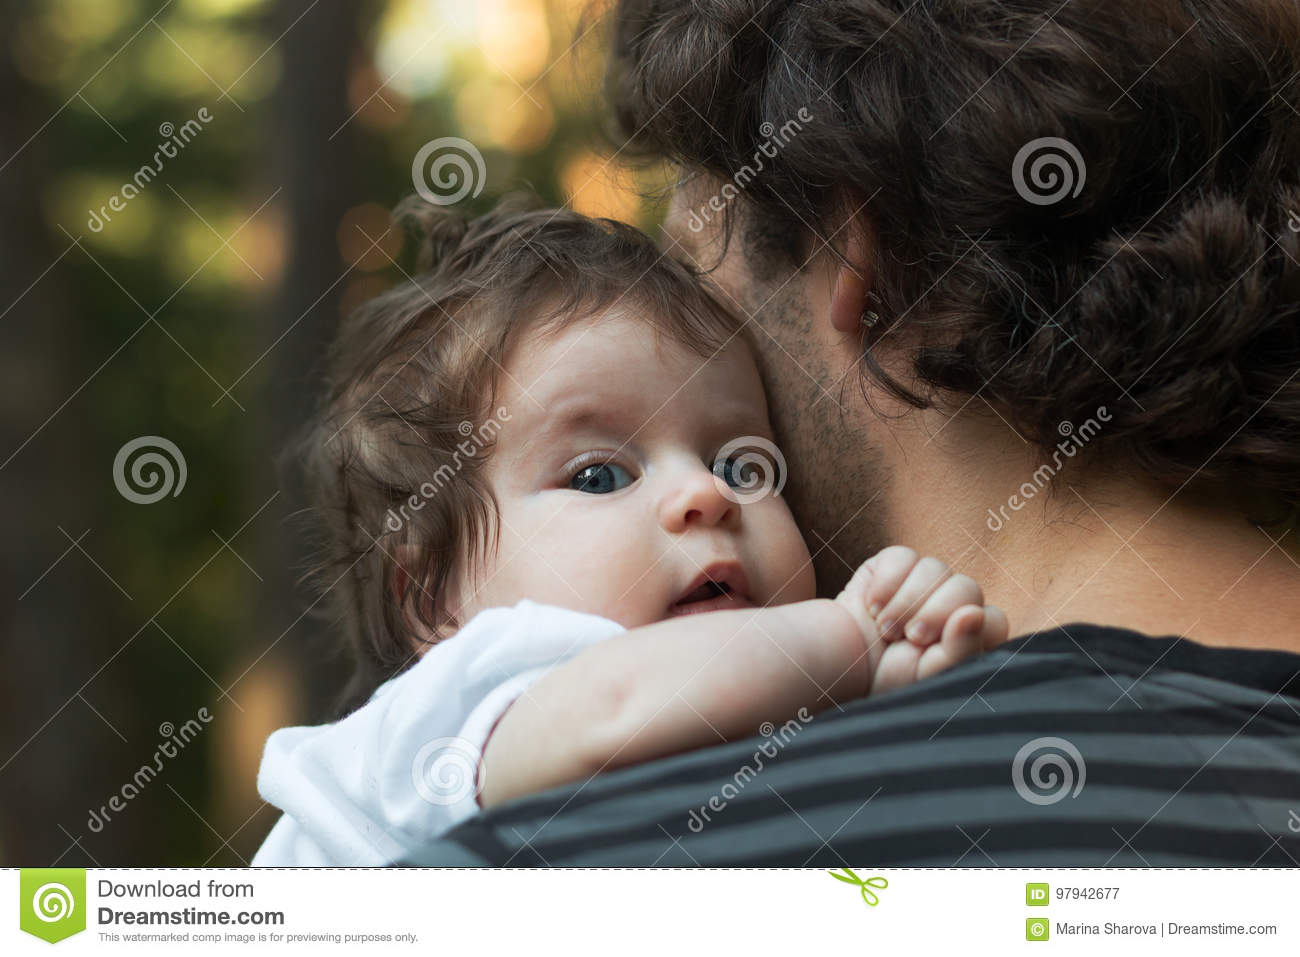 Close up of young father holding his newborn baby. Focus on the baby`s blue eyes